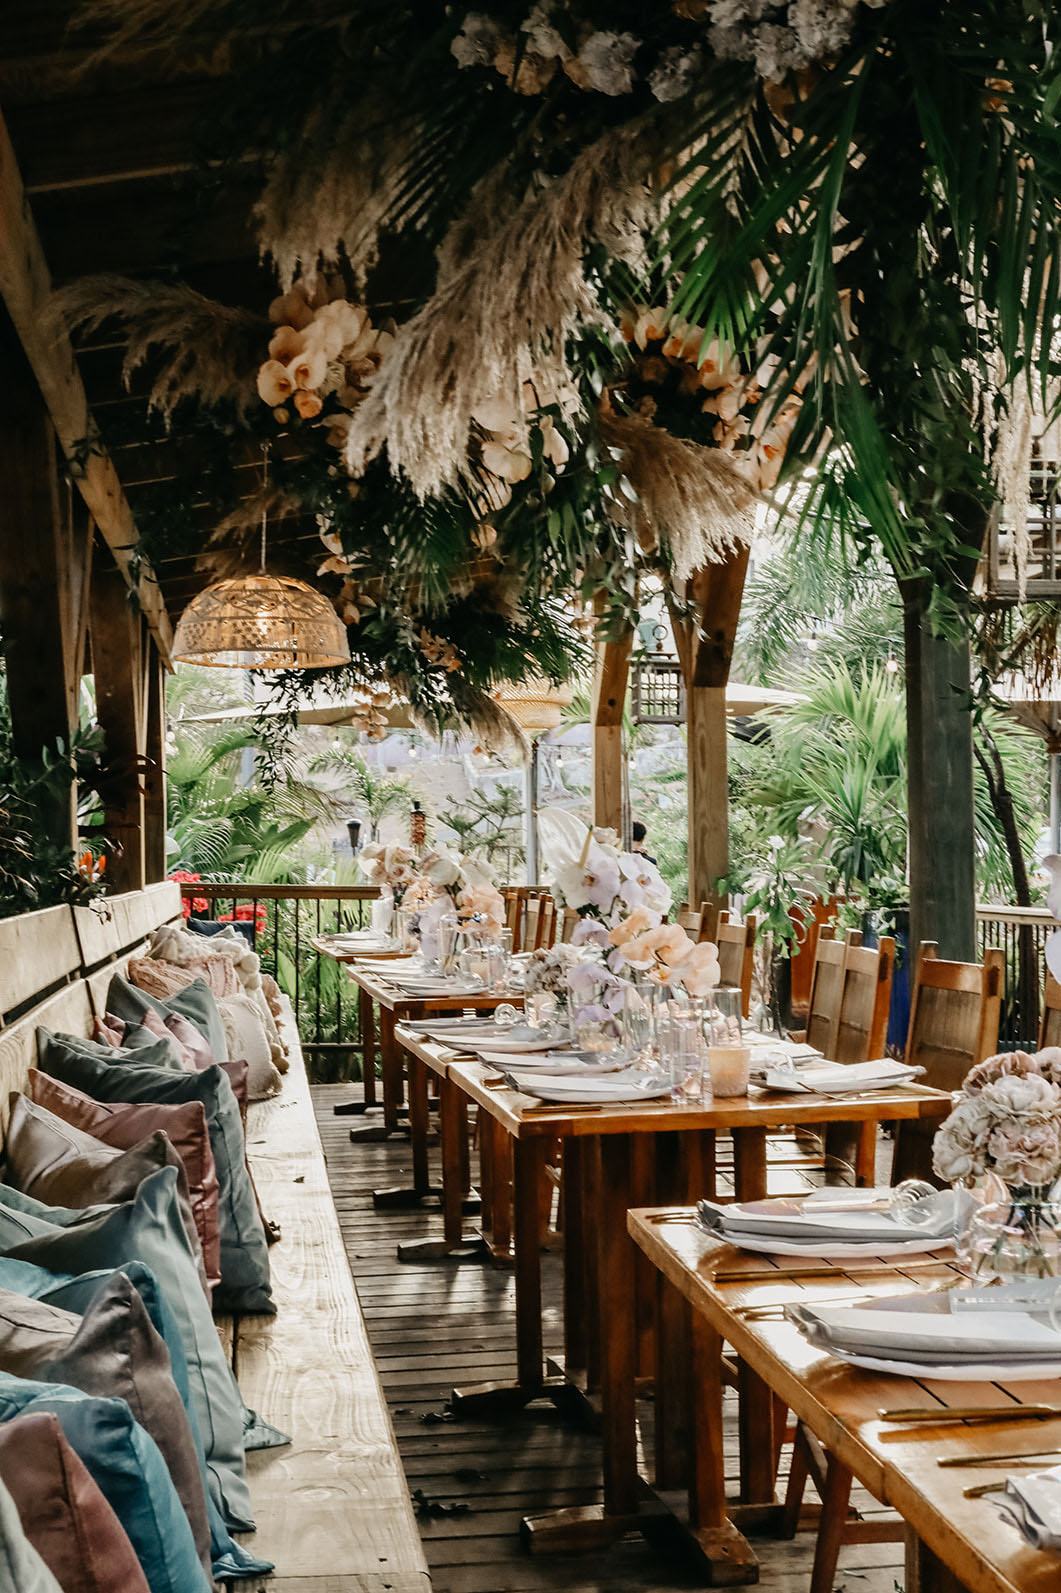 The wedding reception was truly tropical, with pampas grass, leaves and blush orchids over the tables